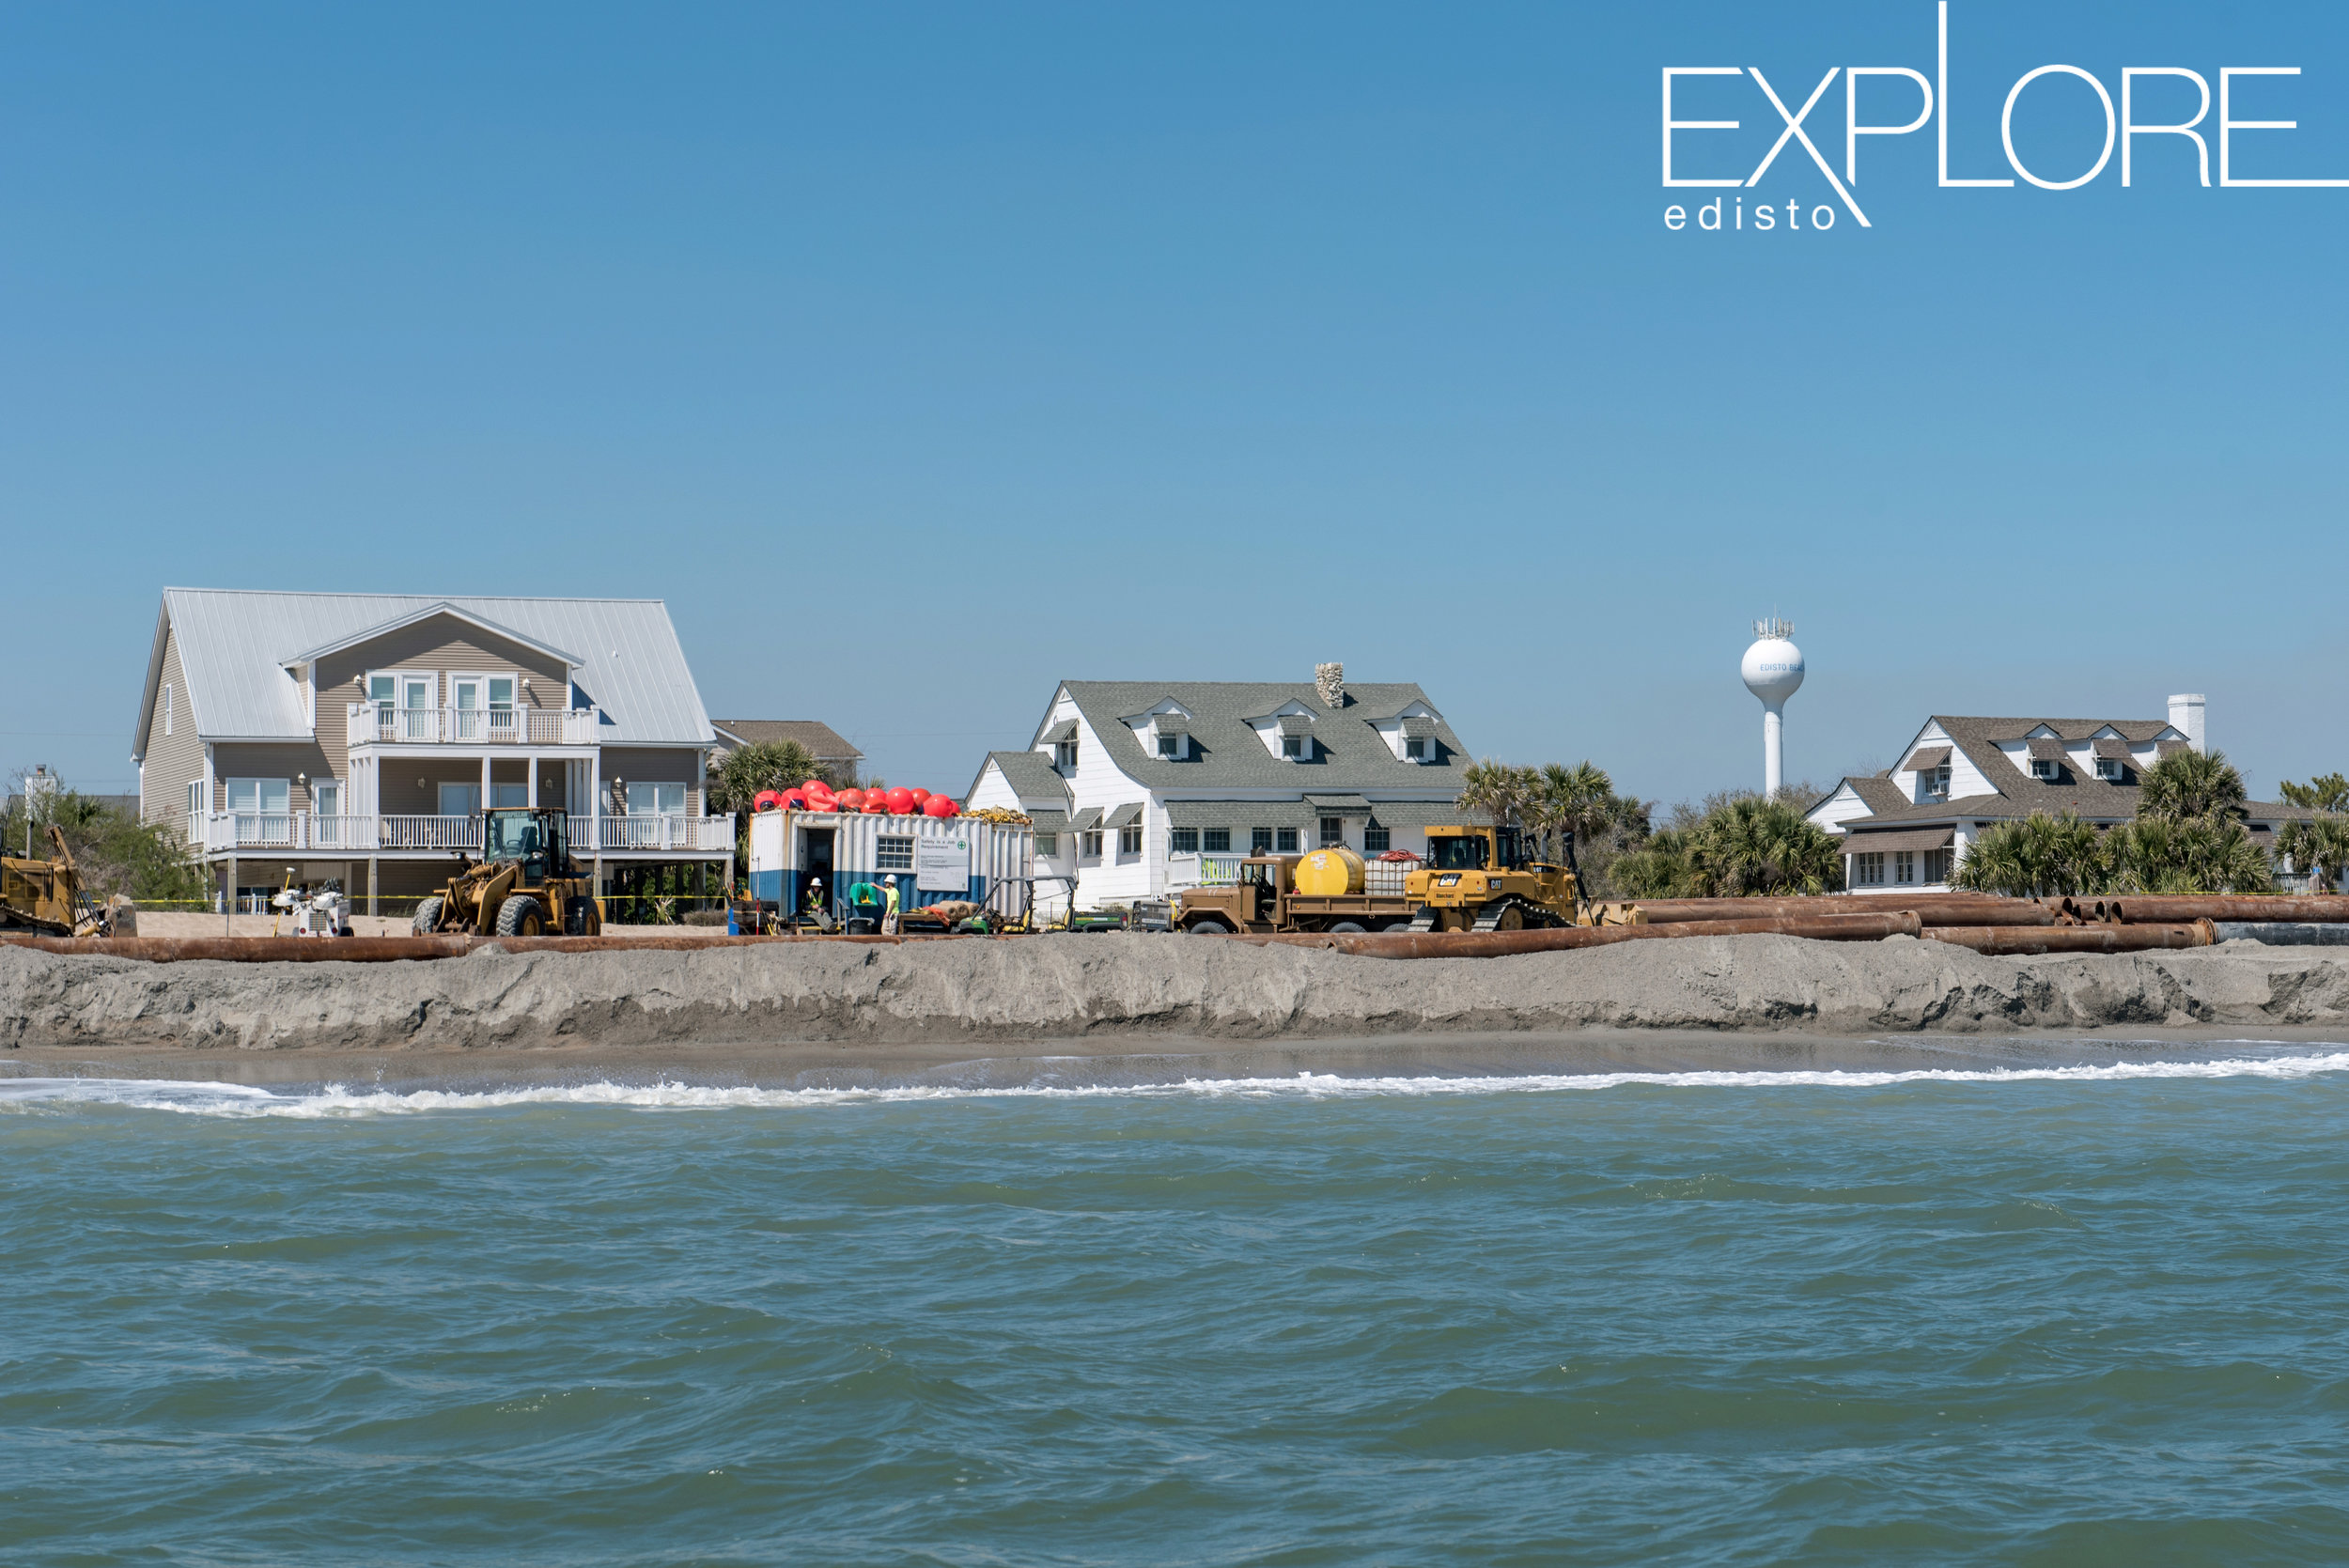 View from the ocean of tractors and crew working on the beach during beach nourishment. Houses and water tower in background.